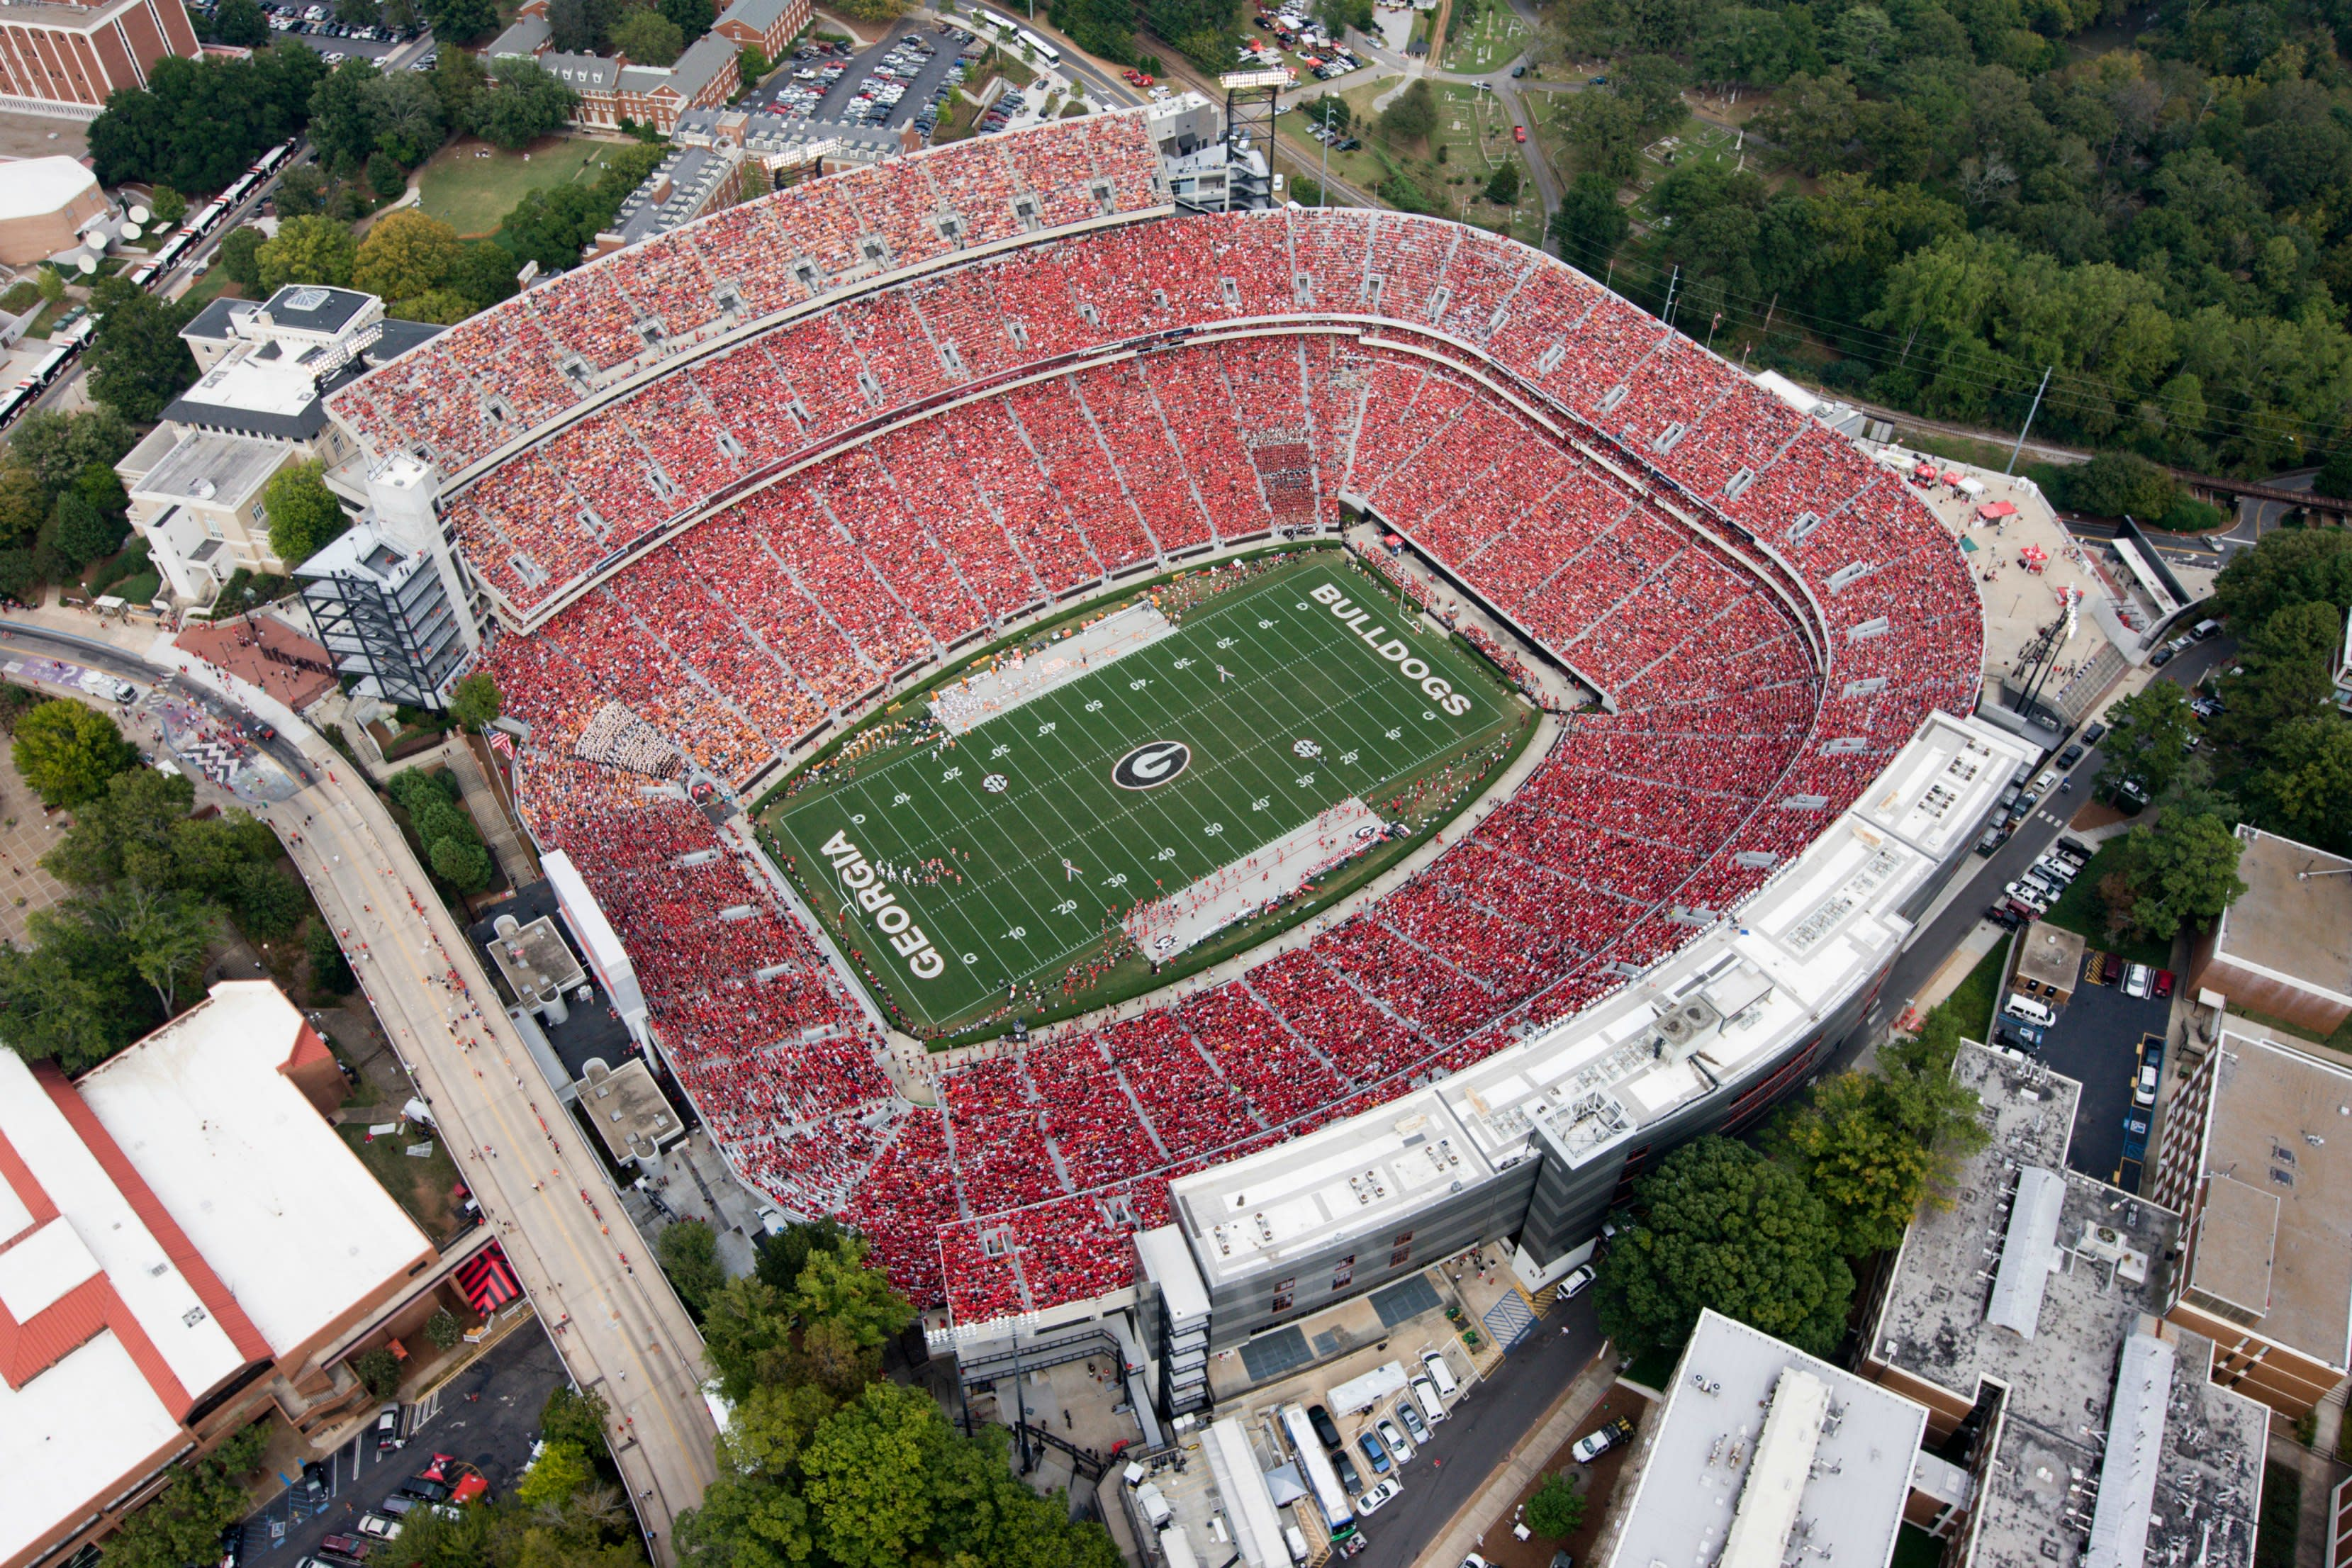 Aerial view of UGA's Sanford Stadium in Athens, Georgia